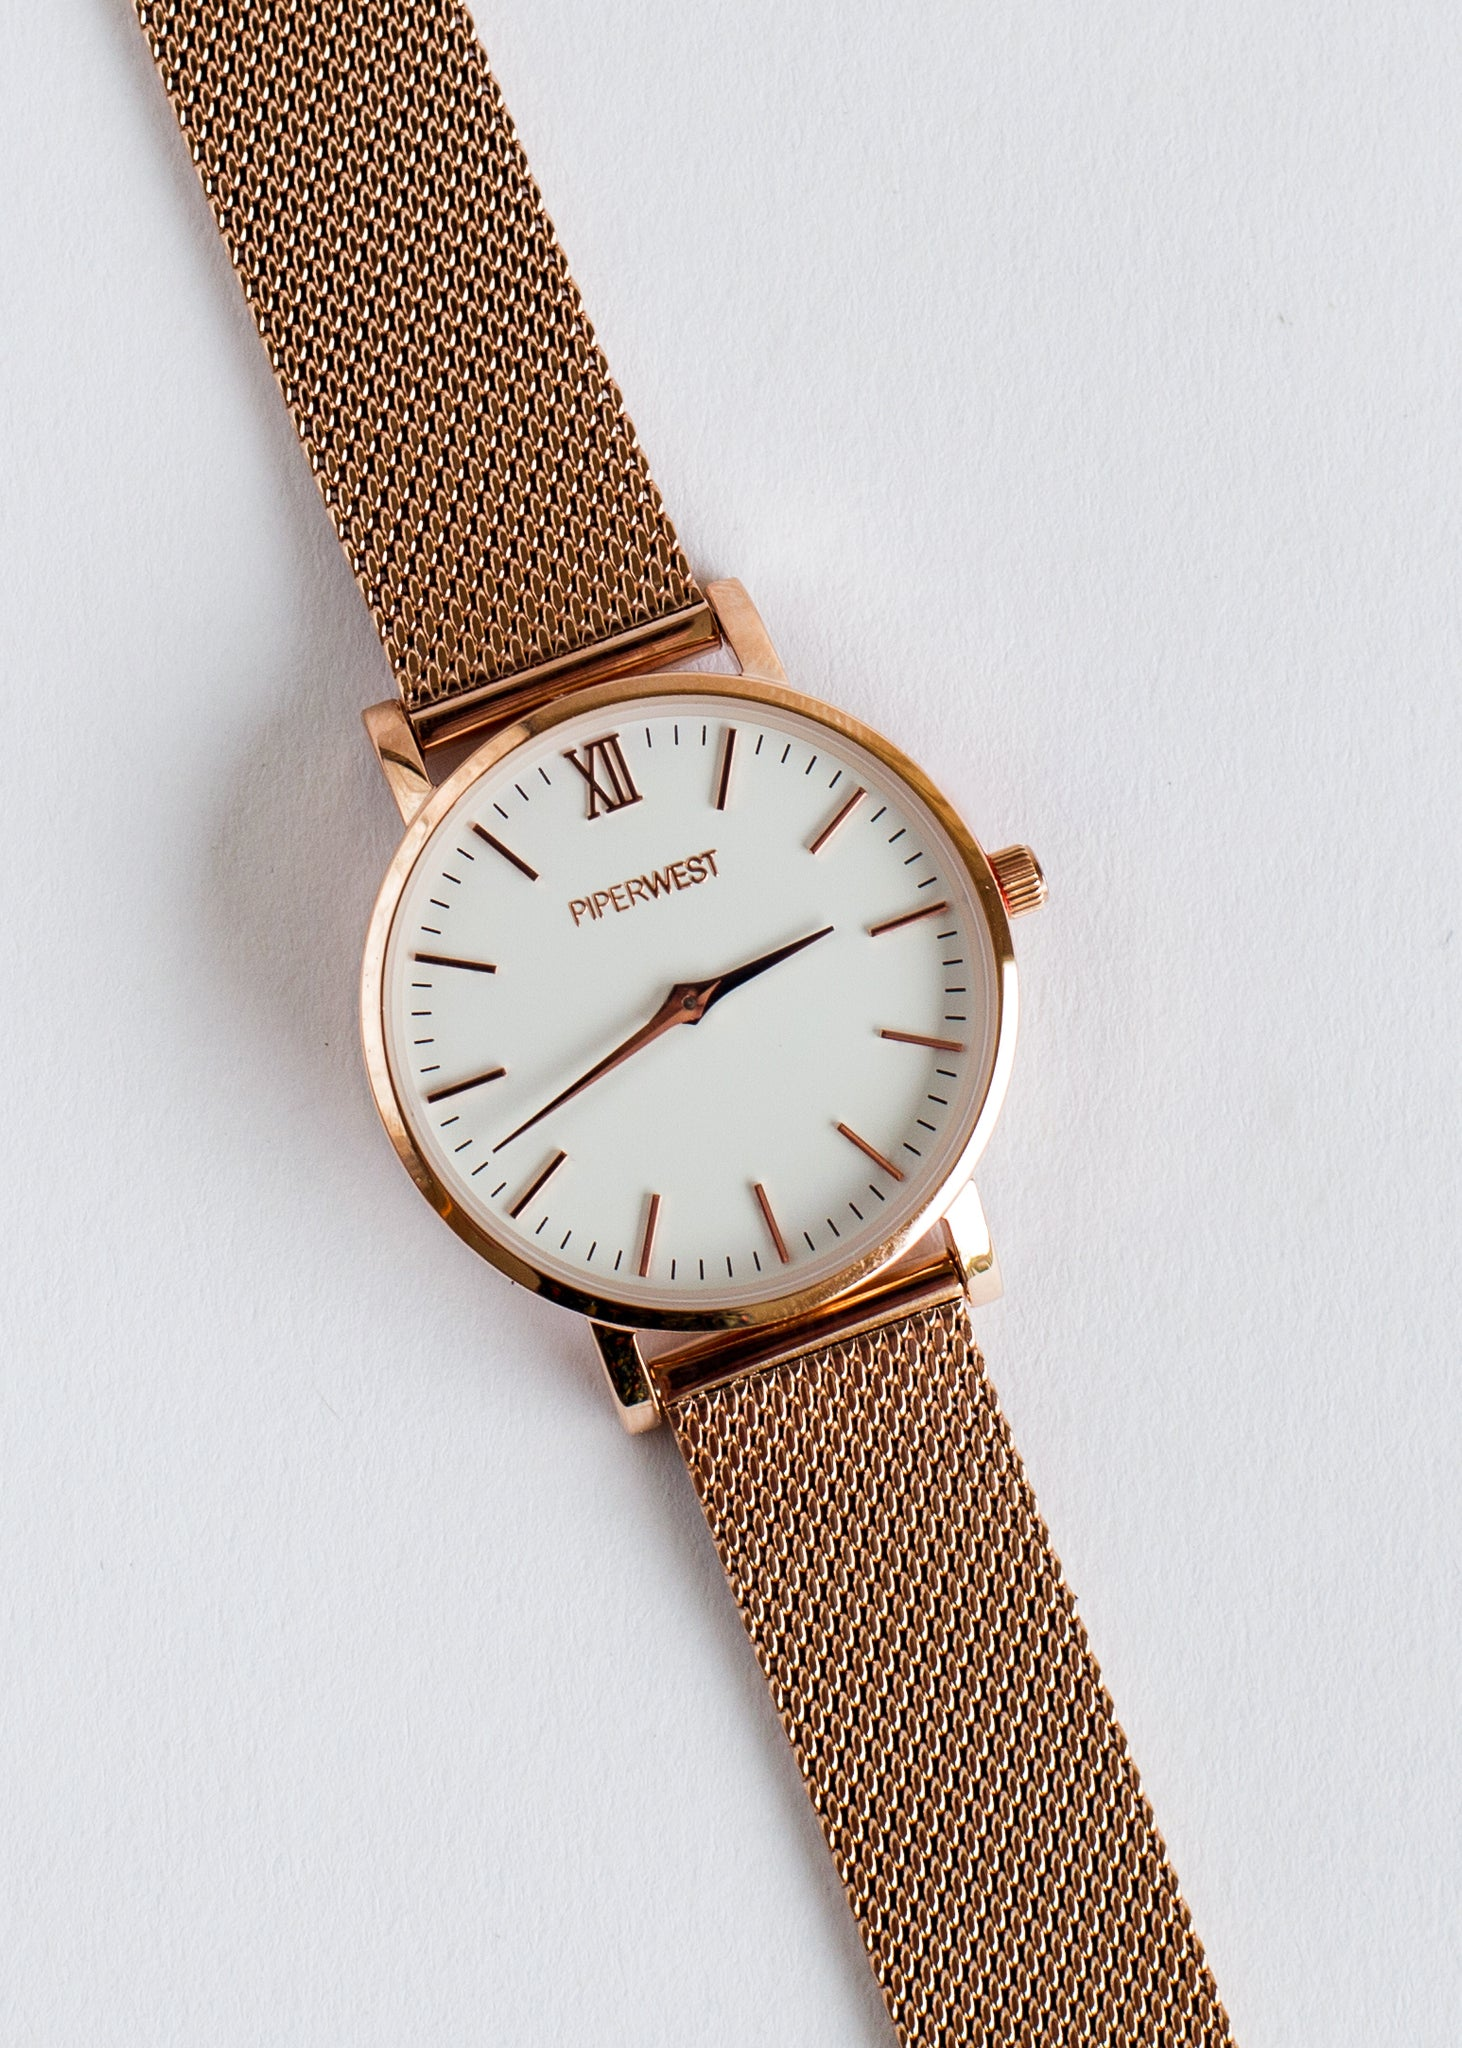 Mini Mesh Minimalist Watch 32mm Rose Gold